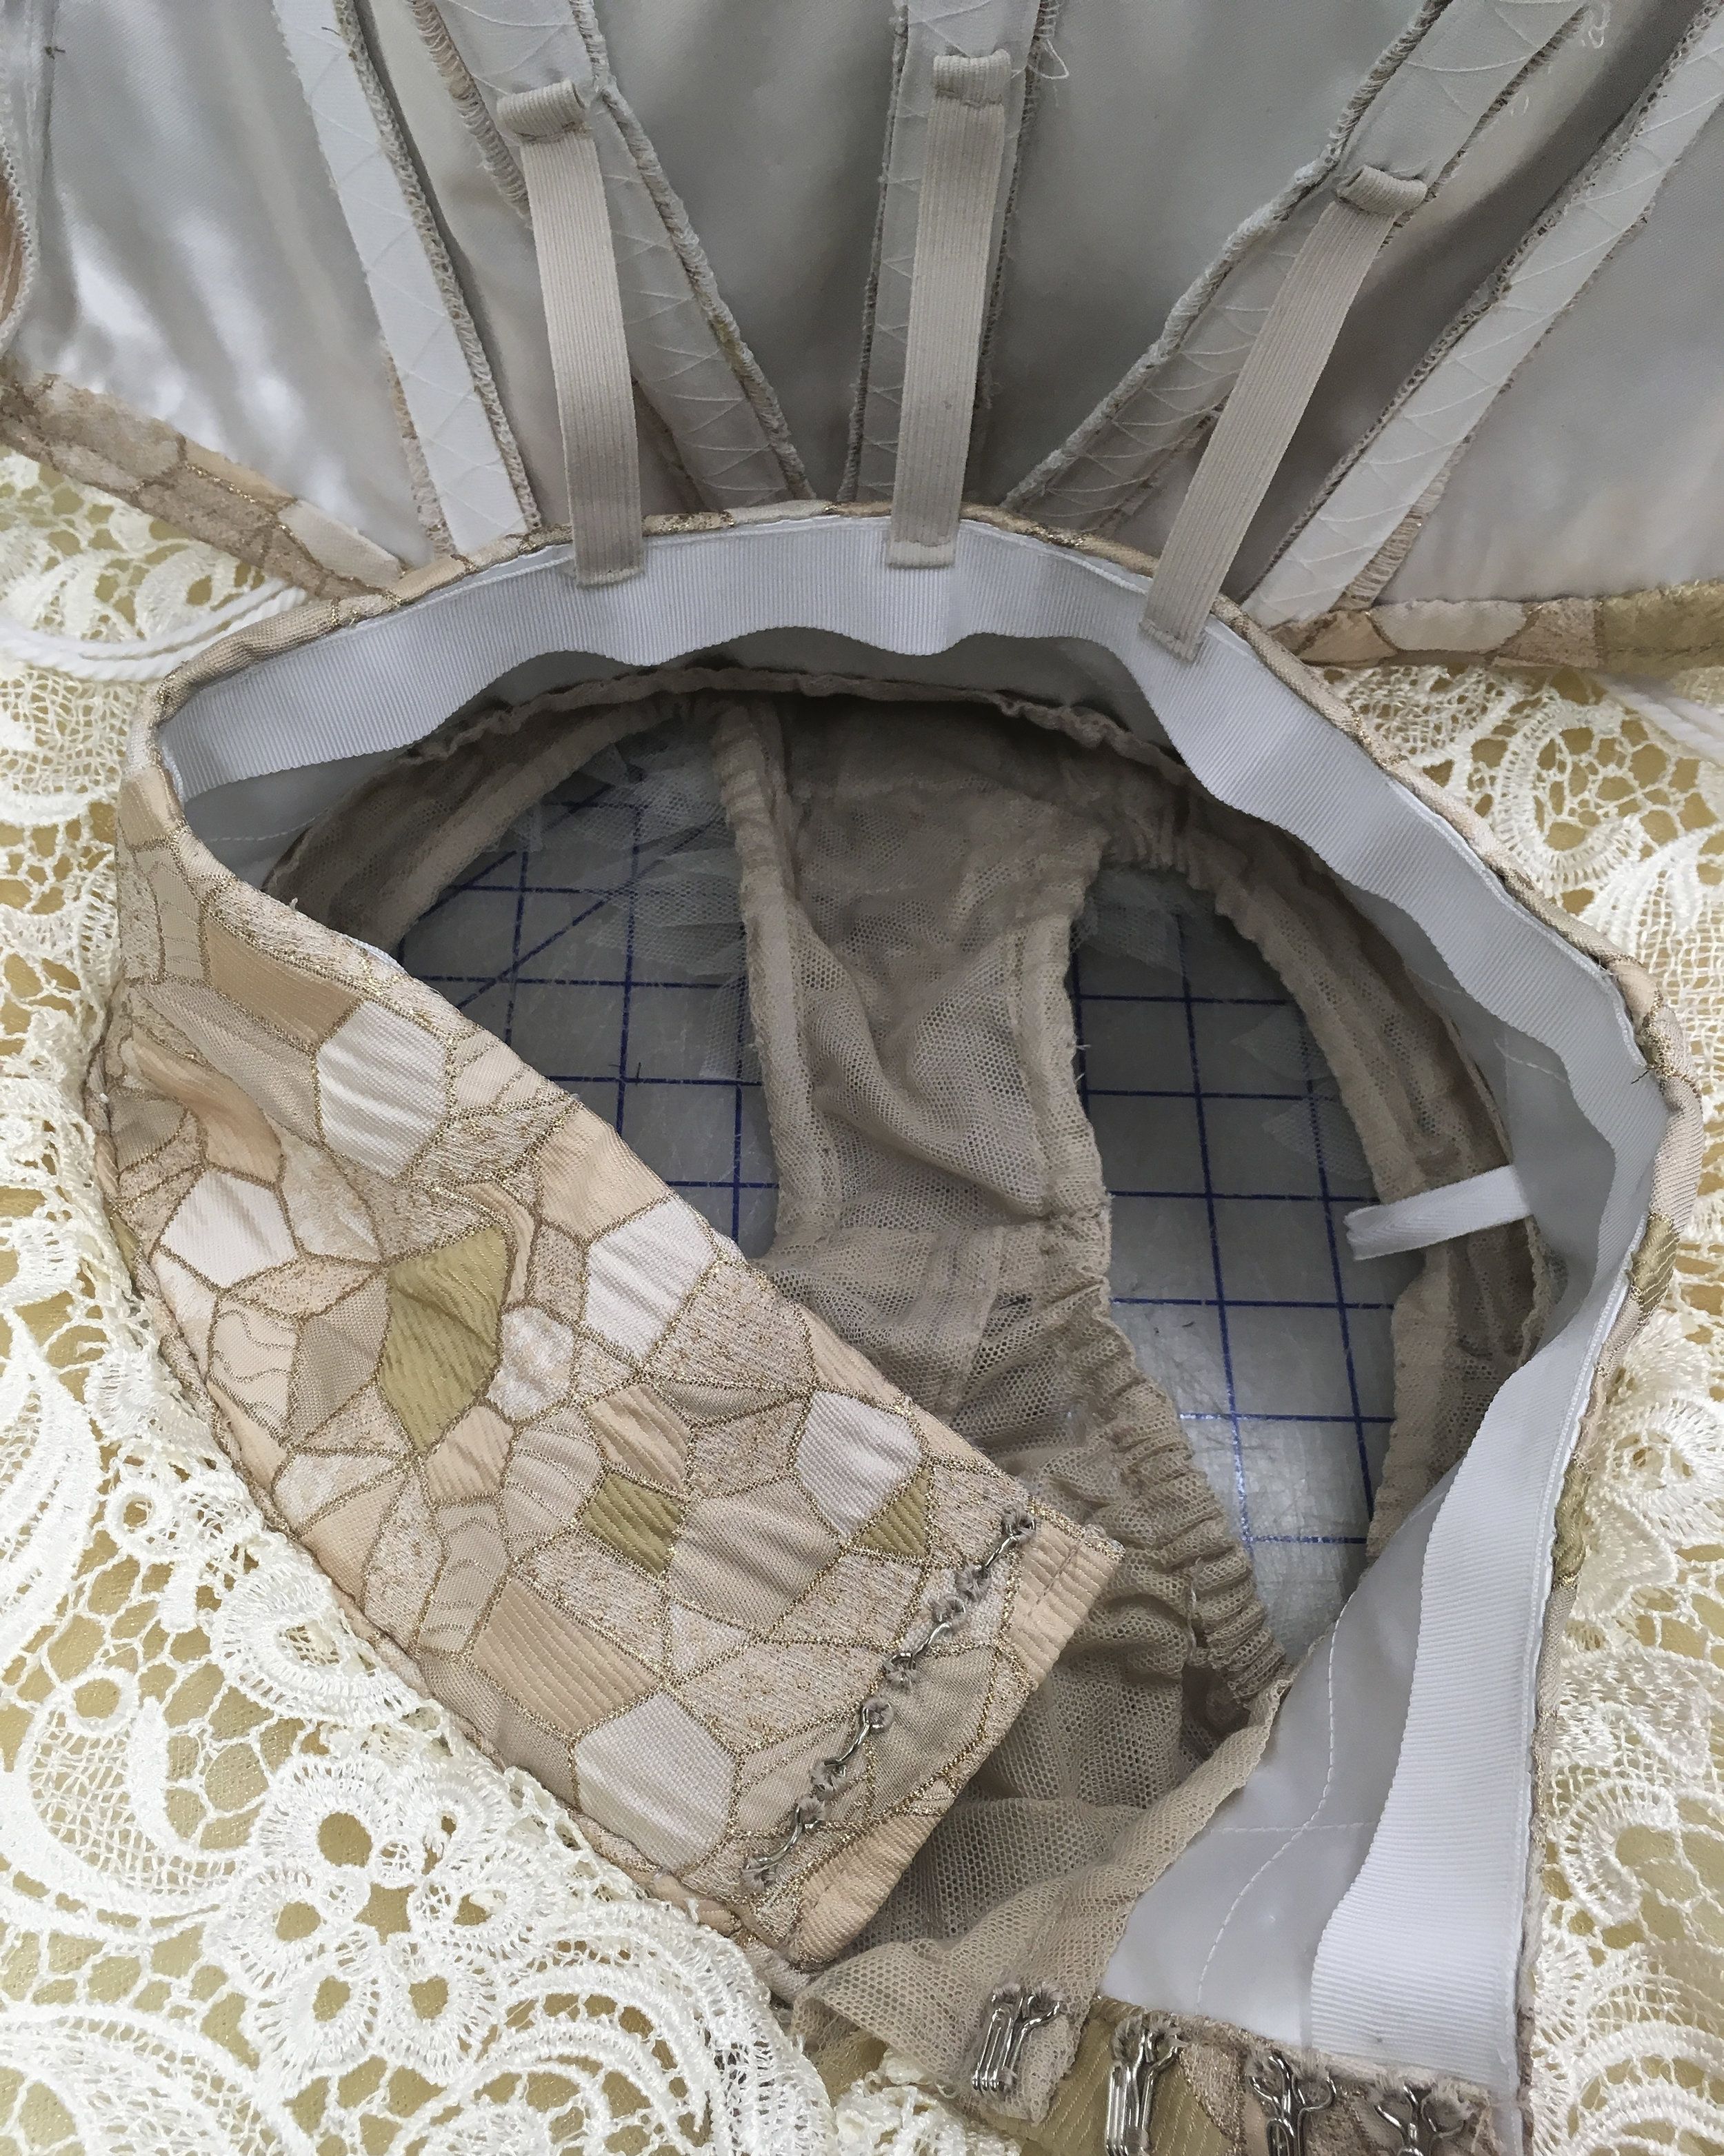 Interior detail with alternate lace plate.